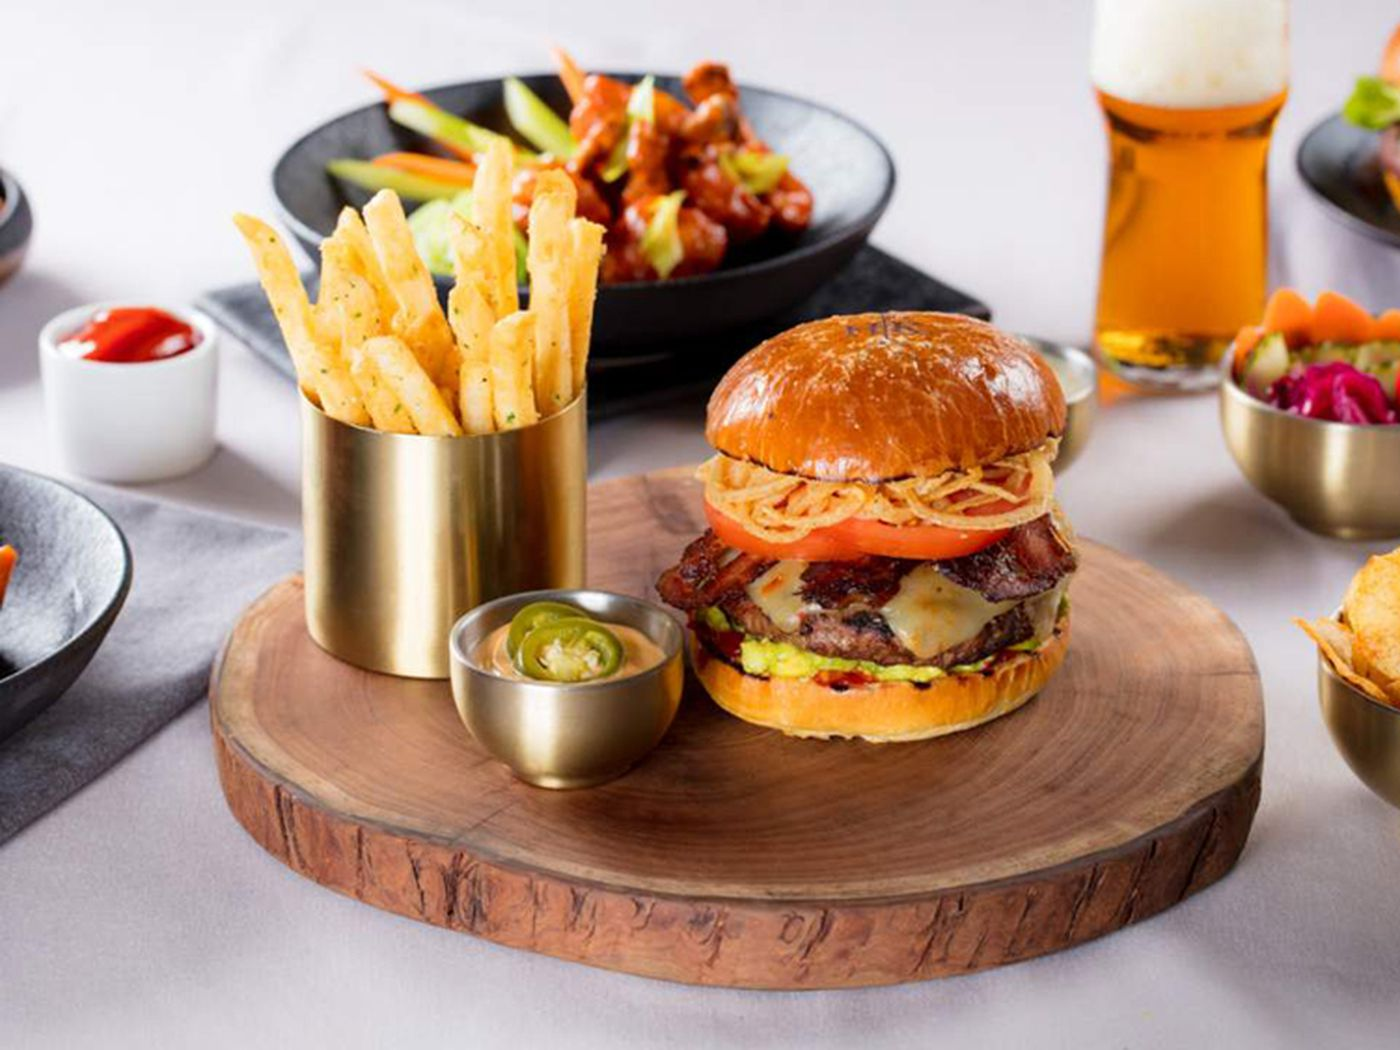 Meet The Lunch Only Specials At Gordon Ramsay Hell S Kitchen Eater Vegas